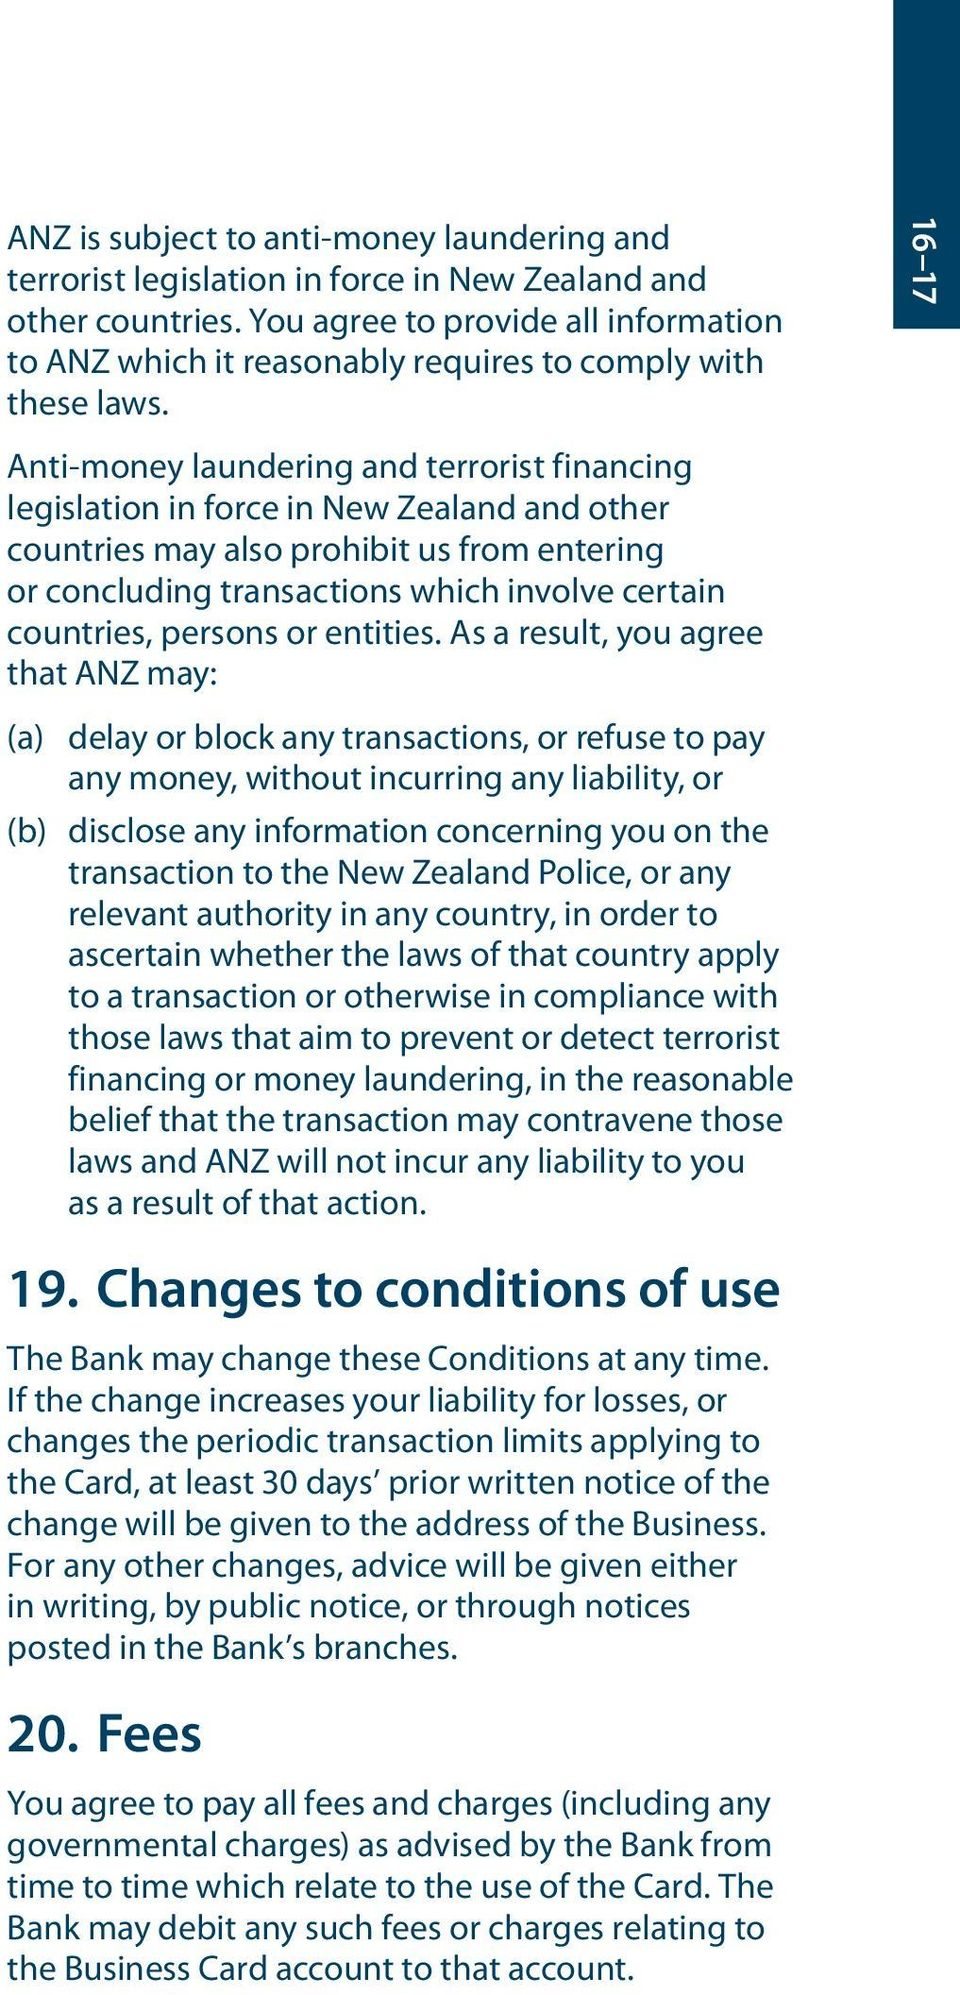 16 17 Anti-money laundering and terrorist financing legislation in force in New Zealand and other countries may also prohibit us from entering or concluding transactions which involve certain